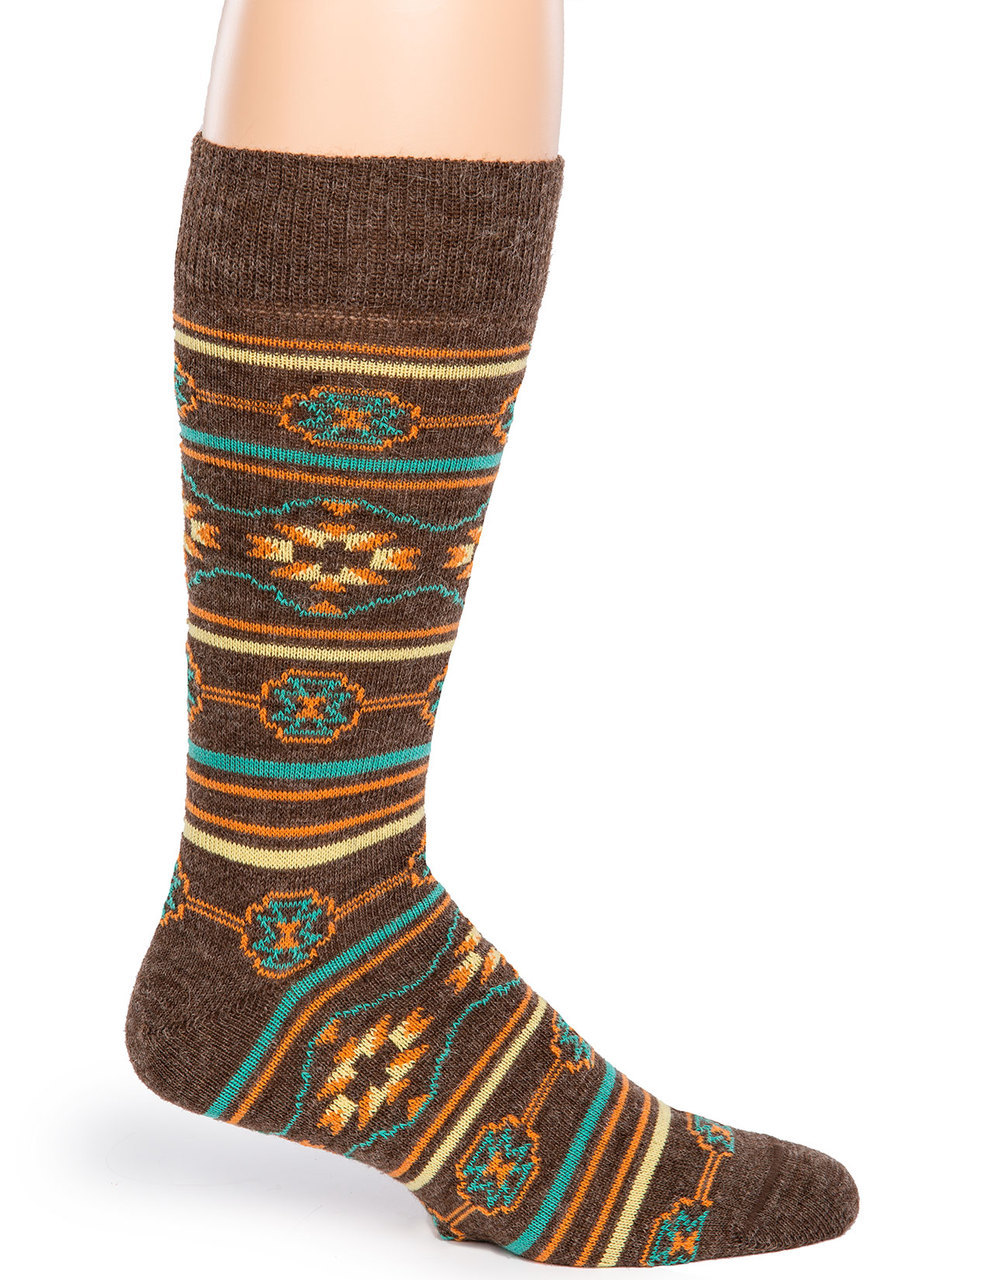 Southwest Socks Side